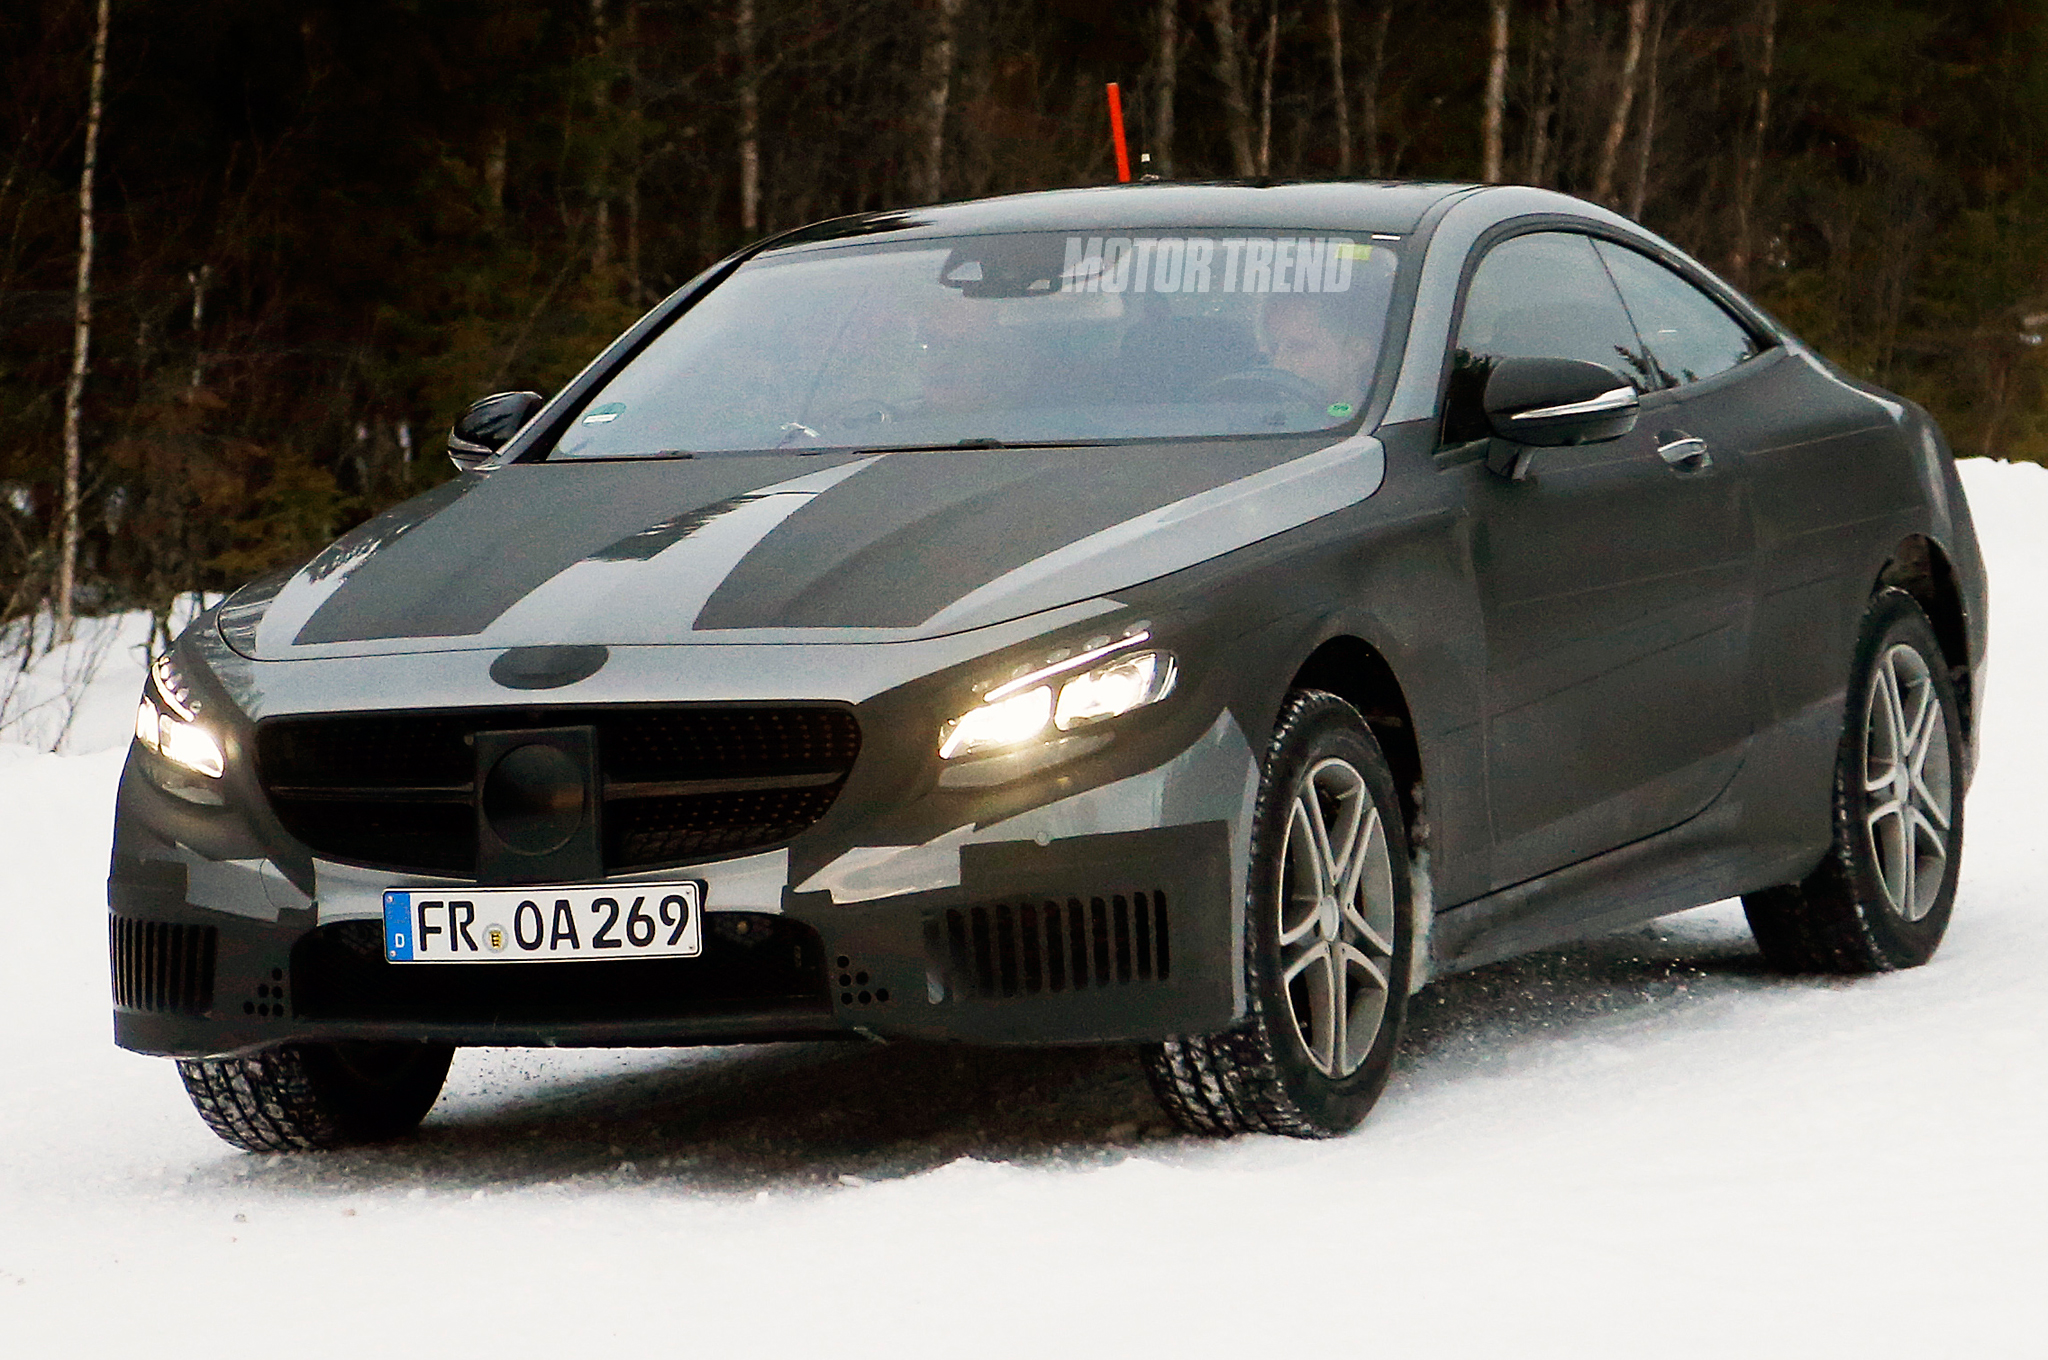 Mercedes-Benz S-Class Coupe Prototype Spied Playing in the Snow